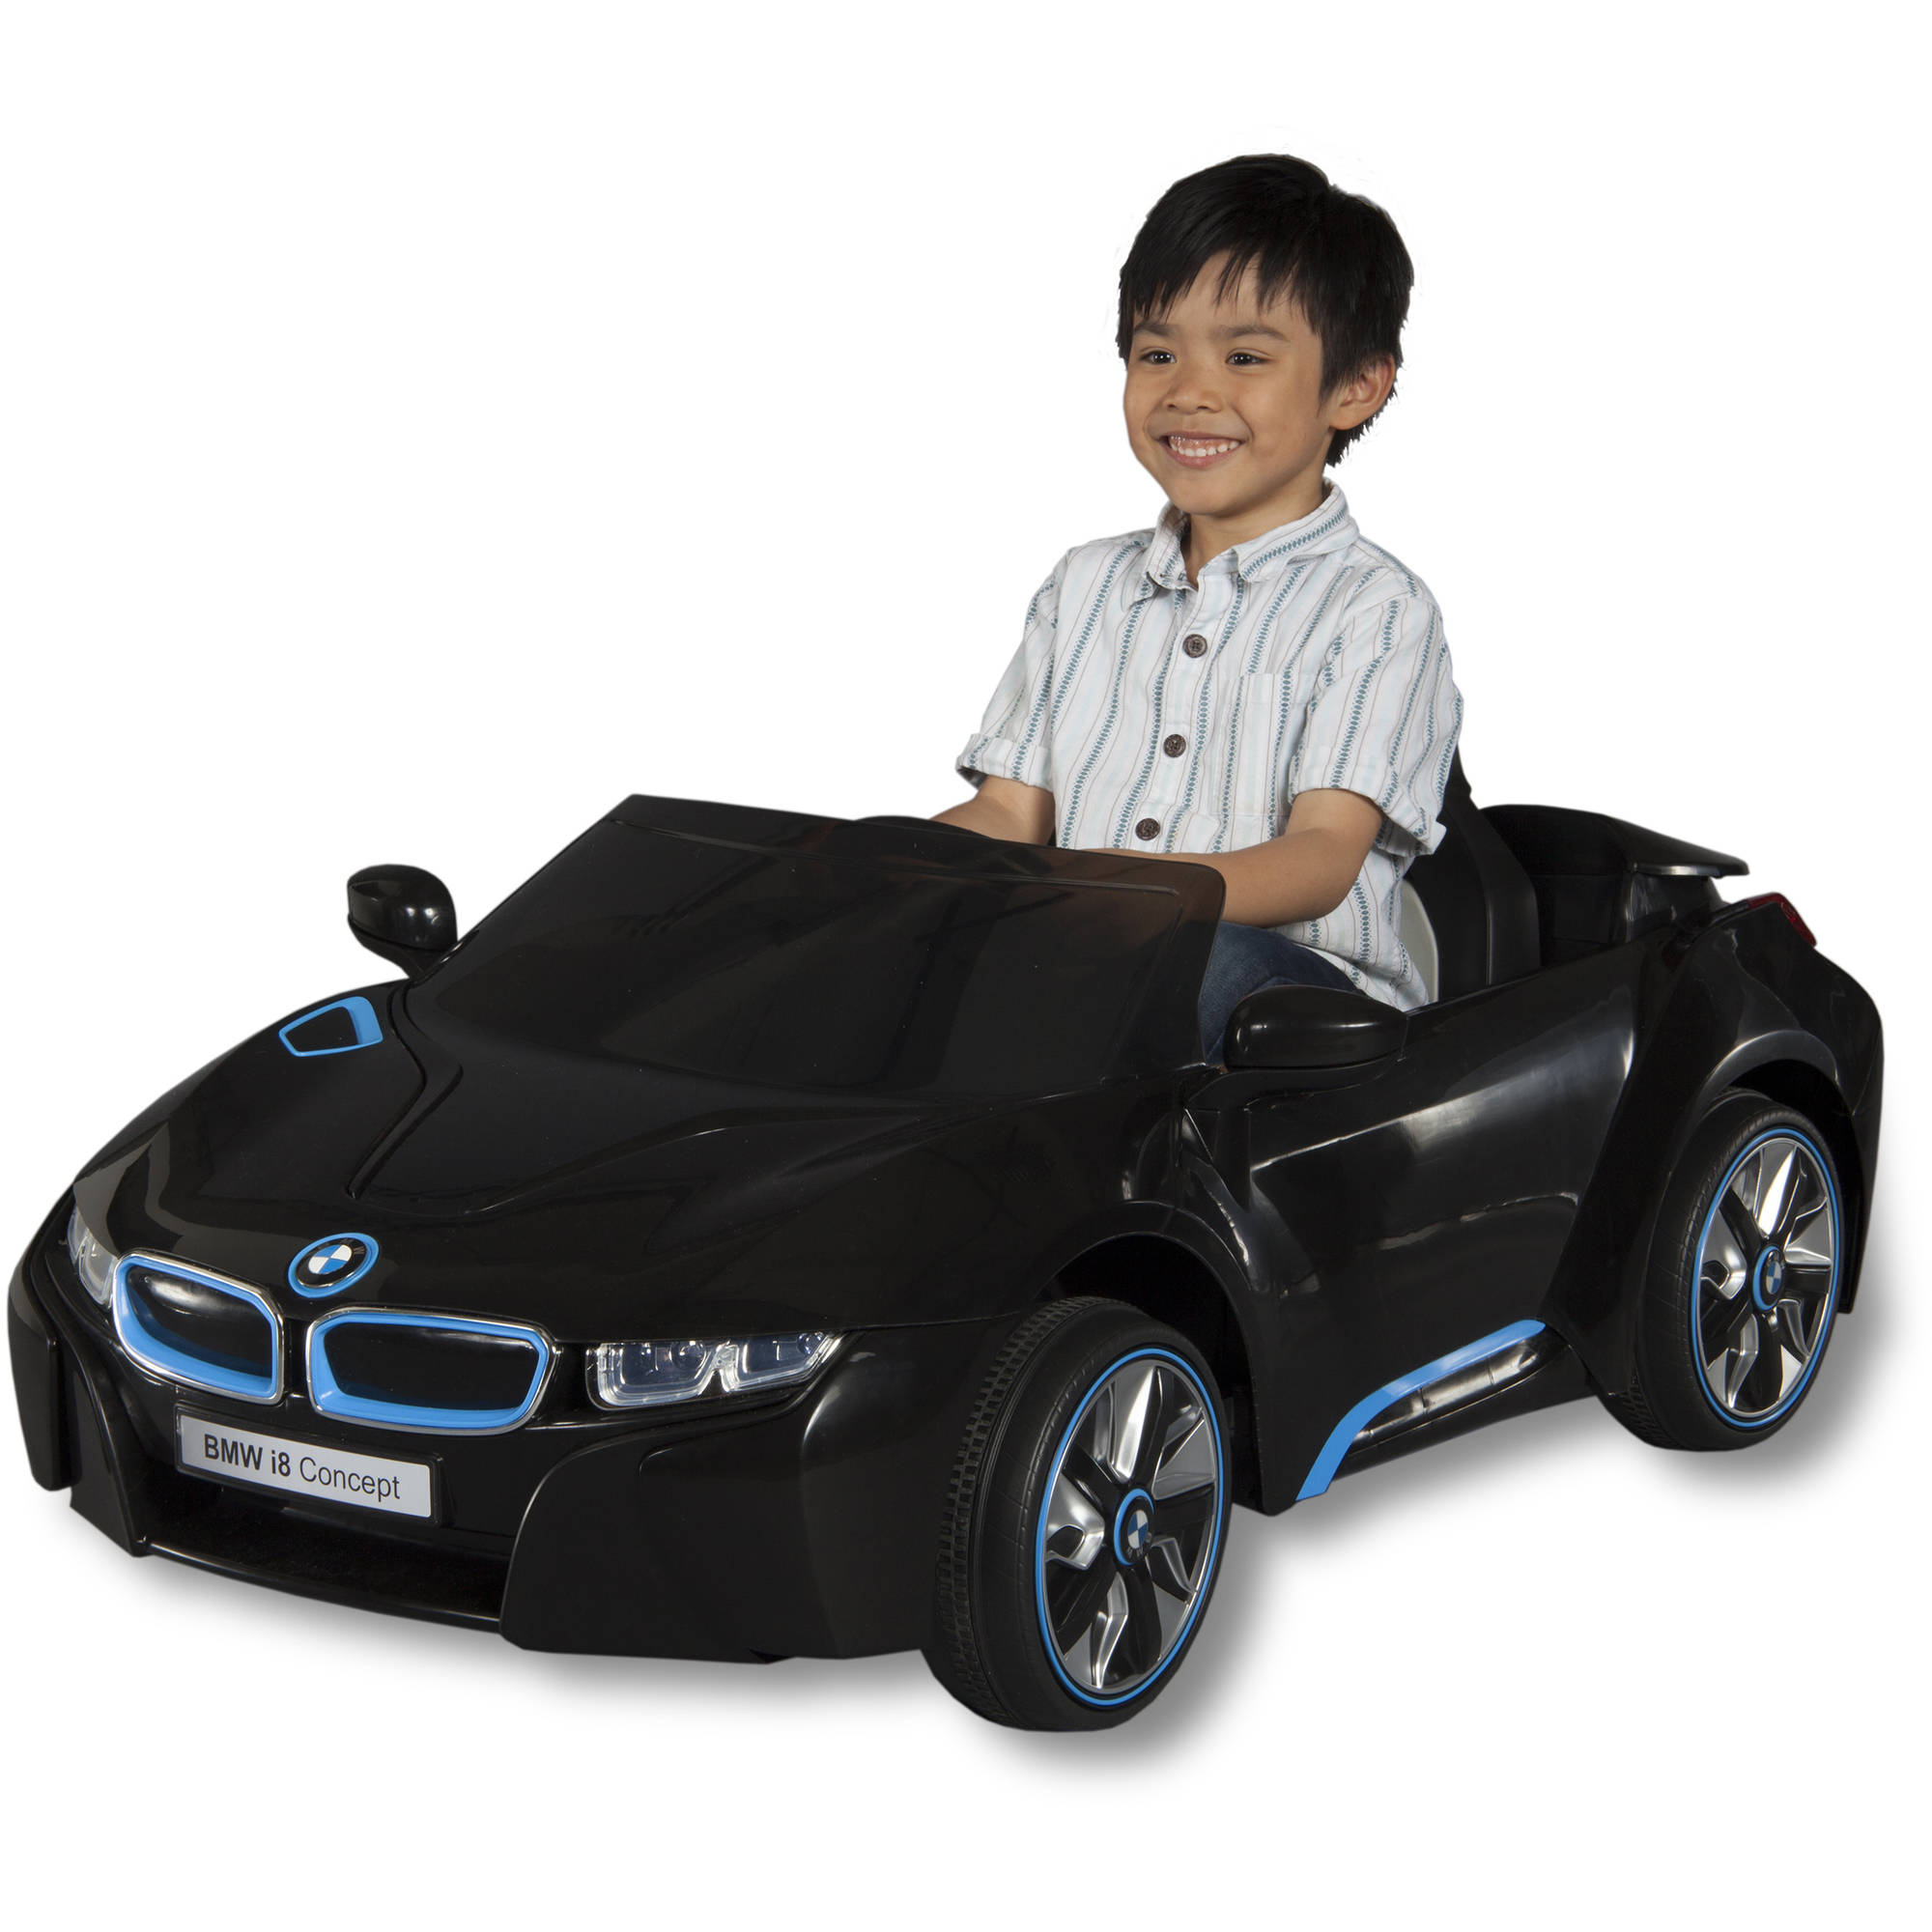 BMW 6V I8 Concept Car Battery-Powered Ride-On